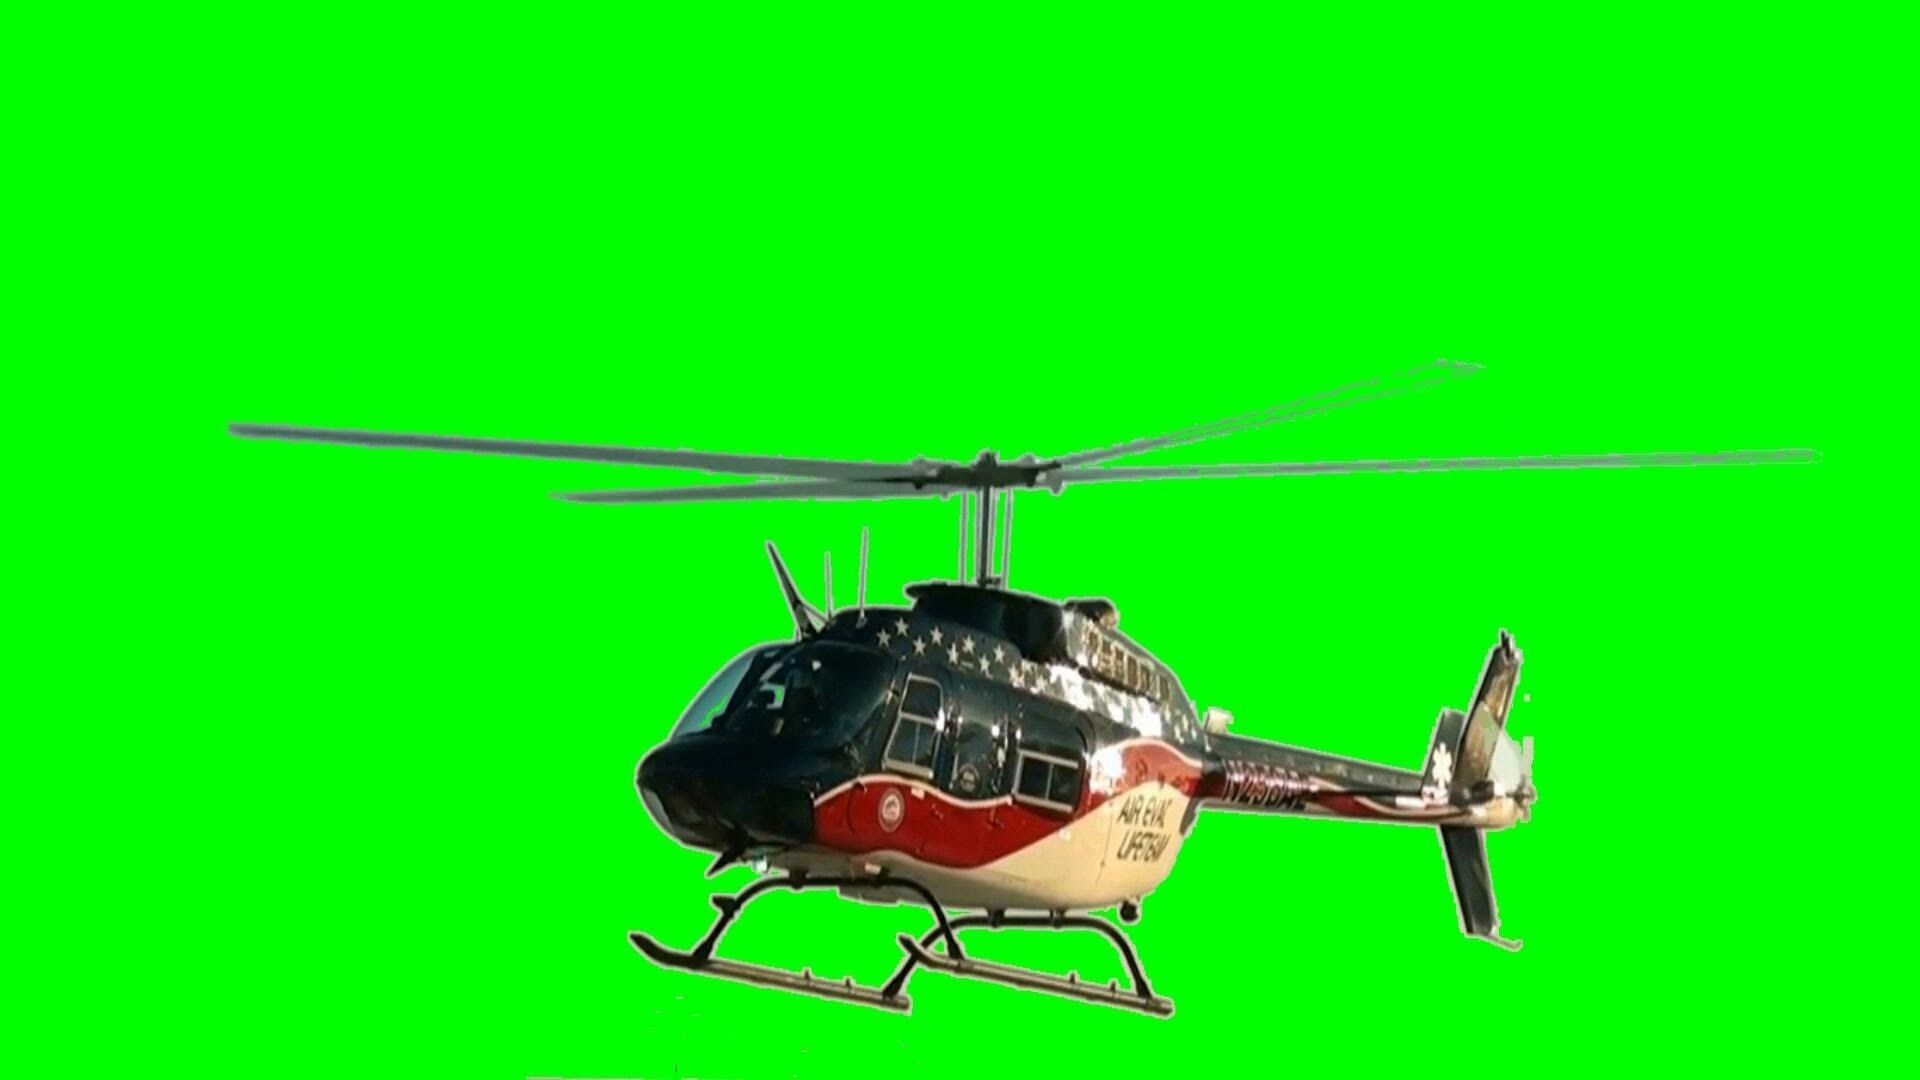 Real Helicopter 1080p Green Screen Green Screen Video Backgrounds Greenscreen Green Background Video